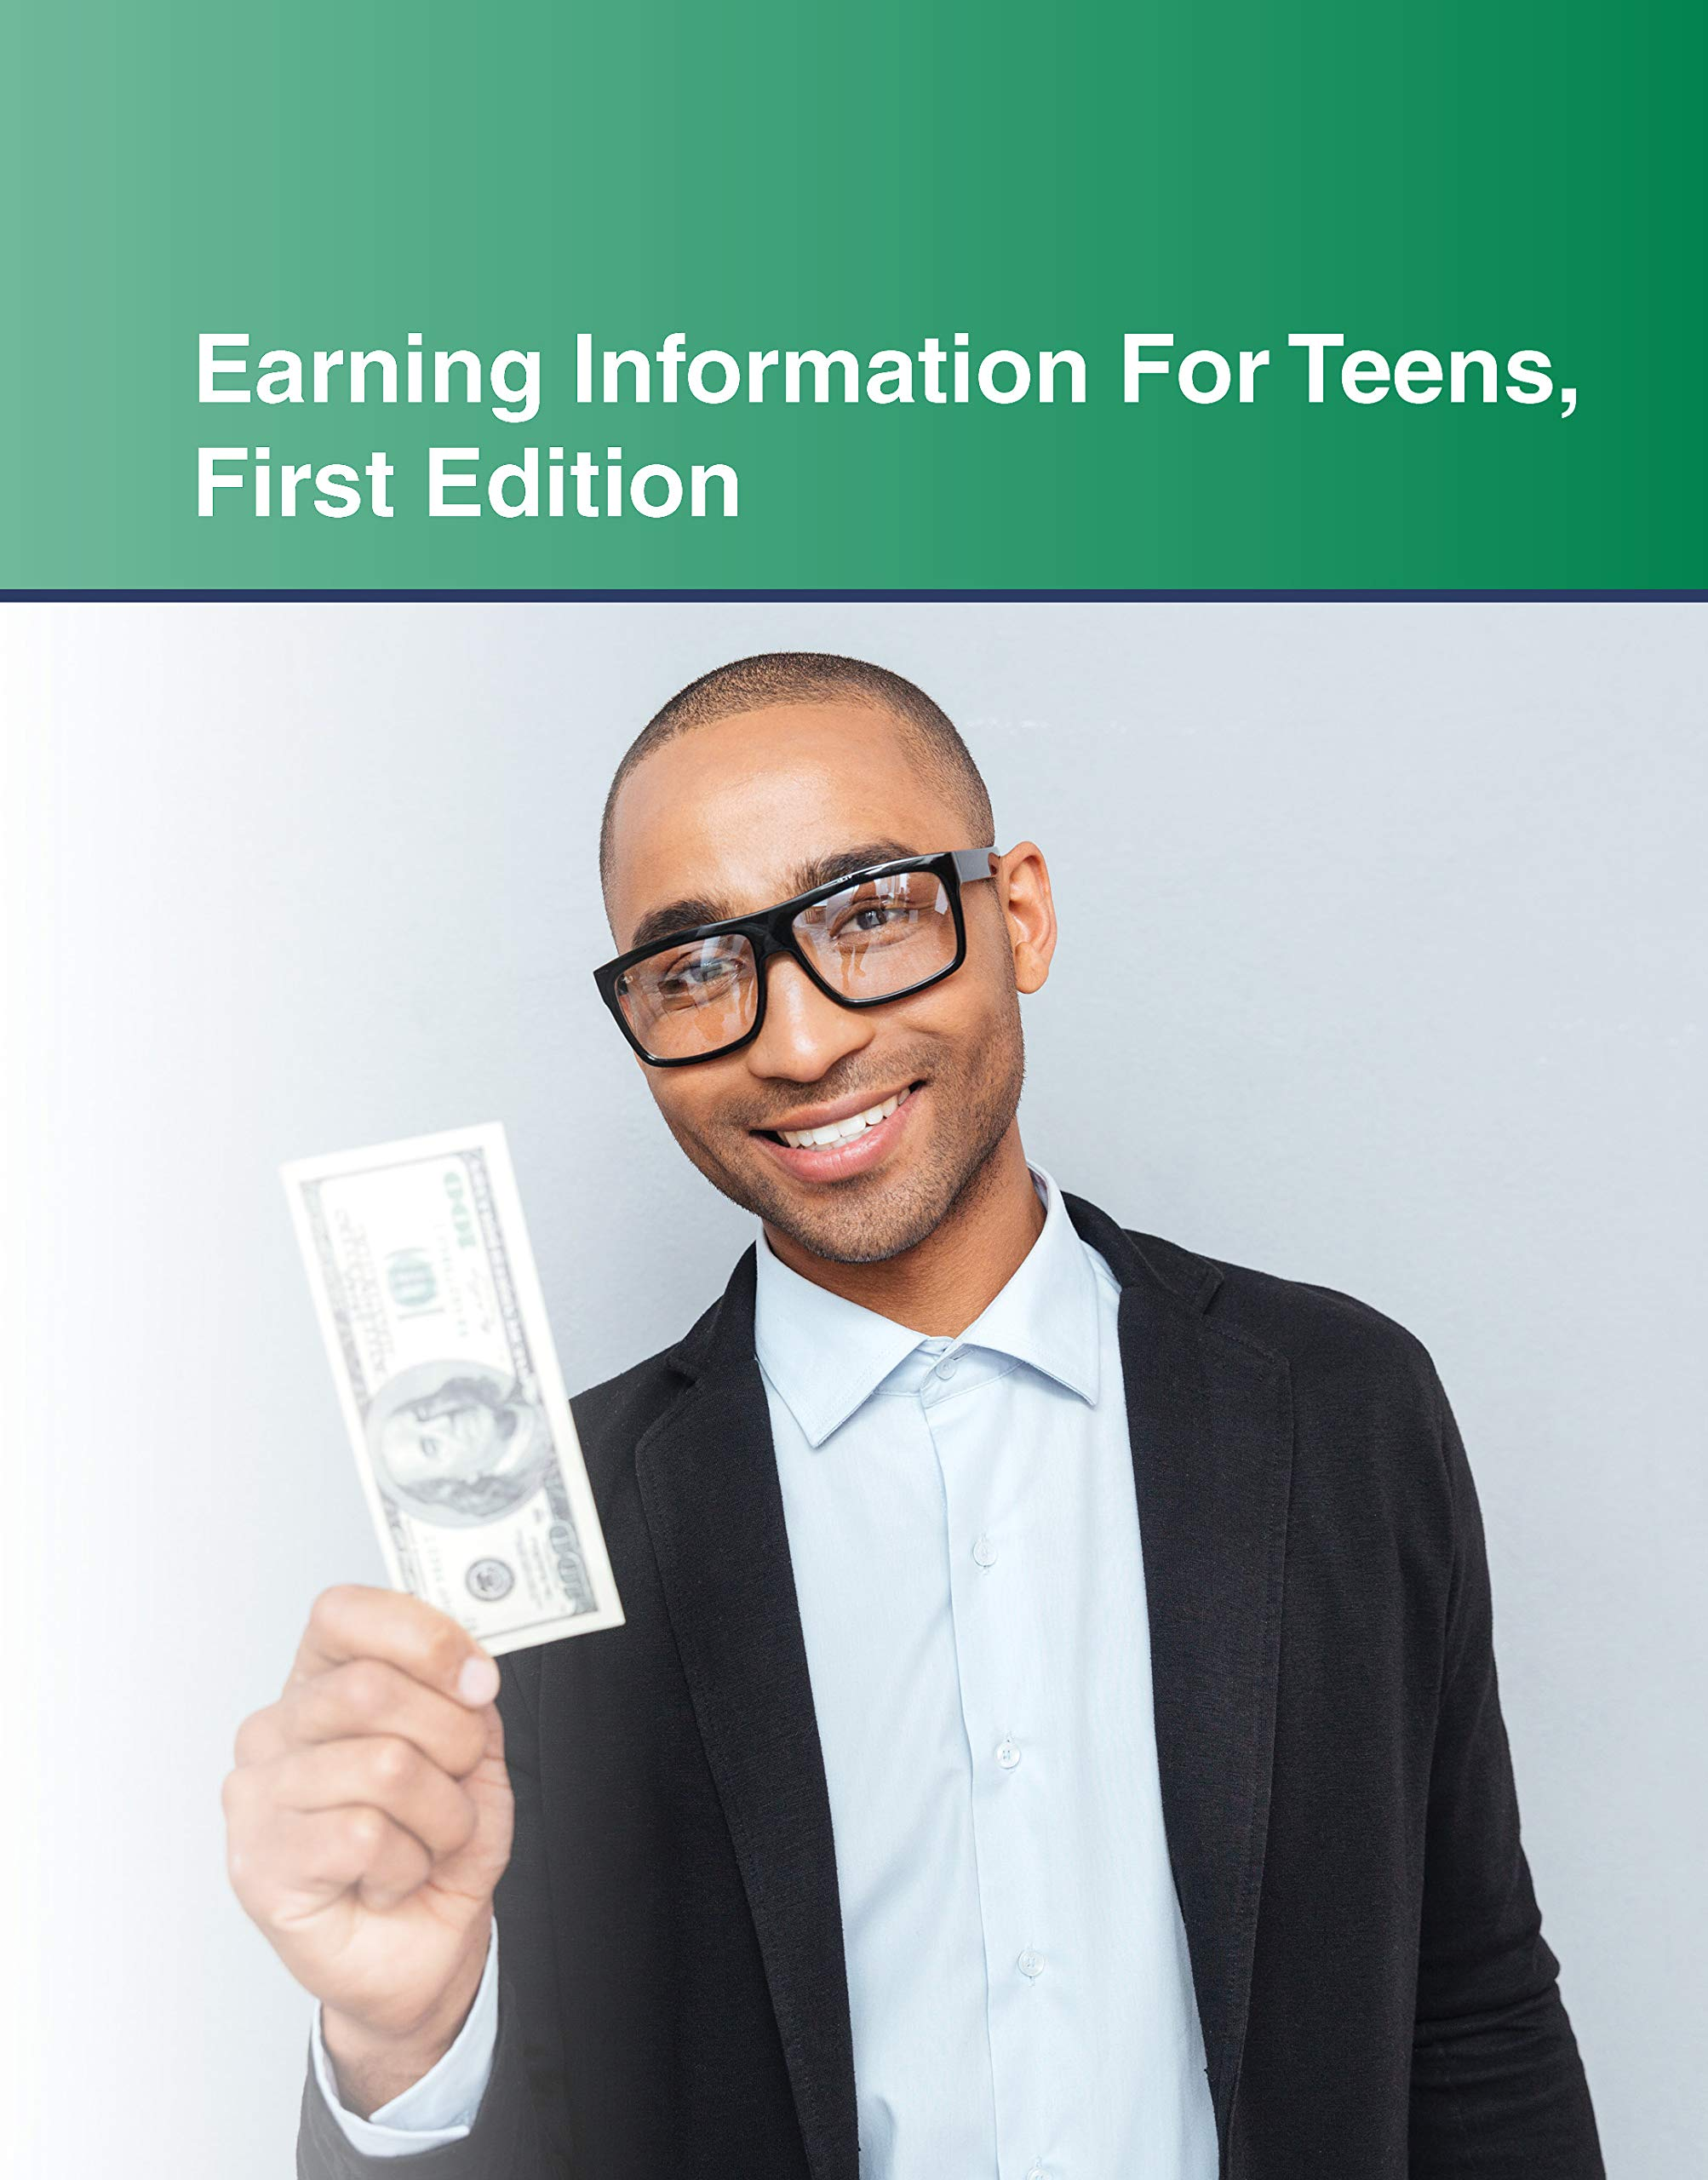 Earning Information for Teens